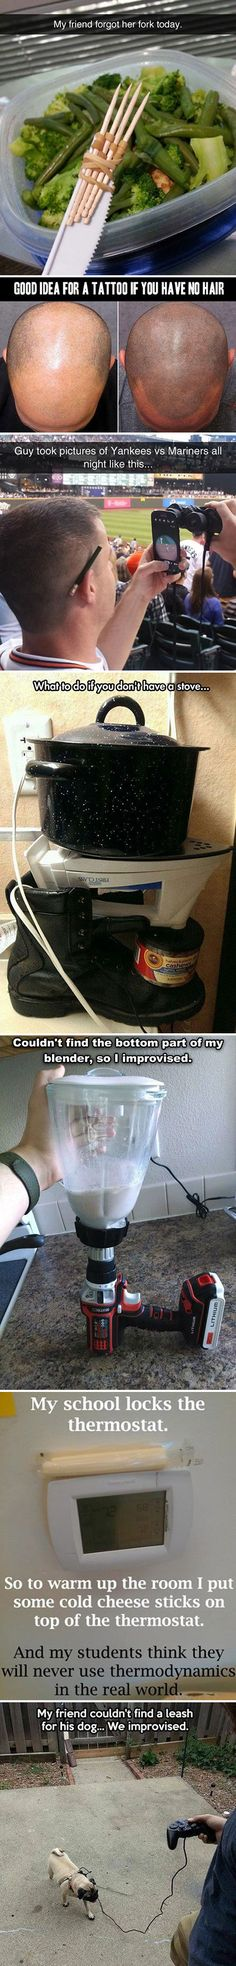 Simple Life Hacks To Help You On Your Way is part of Funny - Funny Pins, Funny Memes, Jokes, Haha, Life Hacks, Have A Laugh, Funny Cute, Hilarious, Top Funny